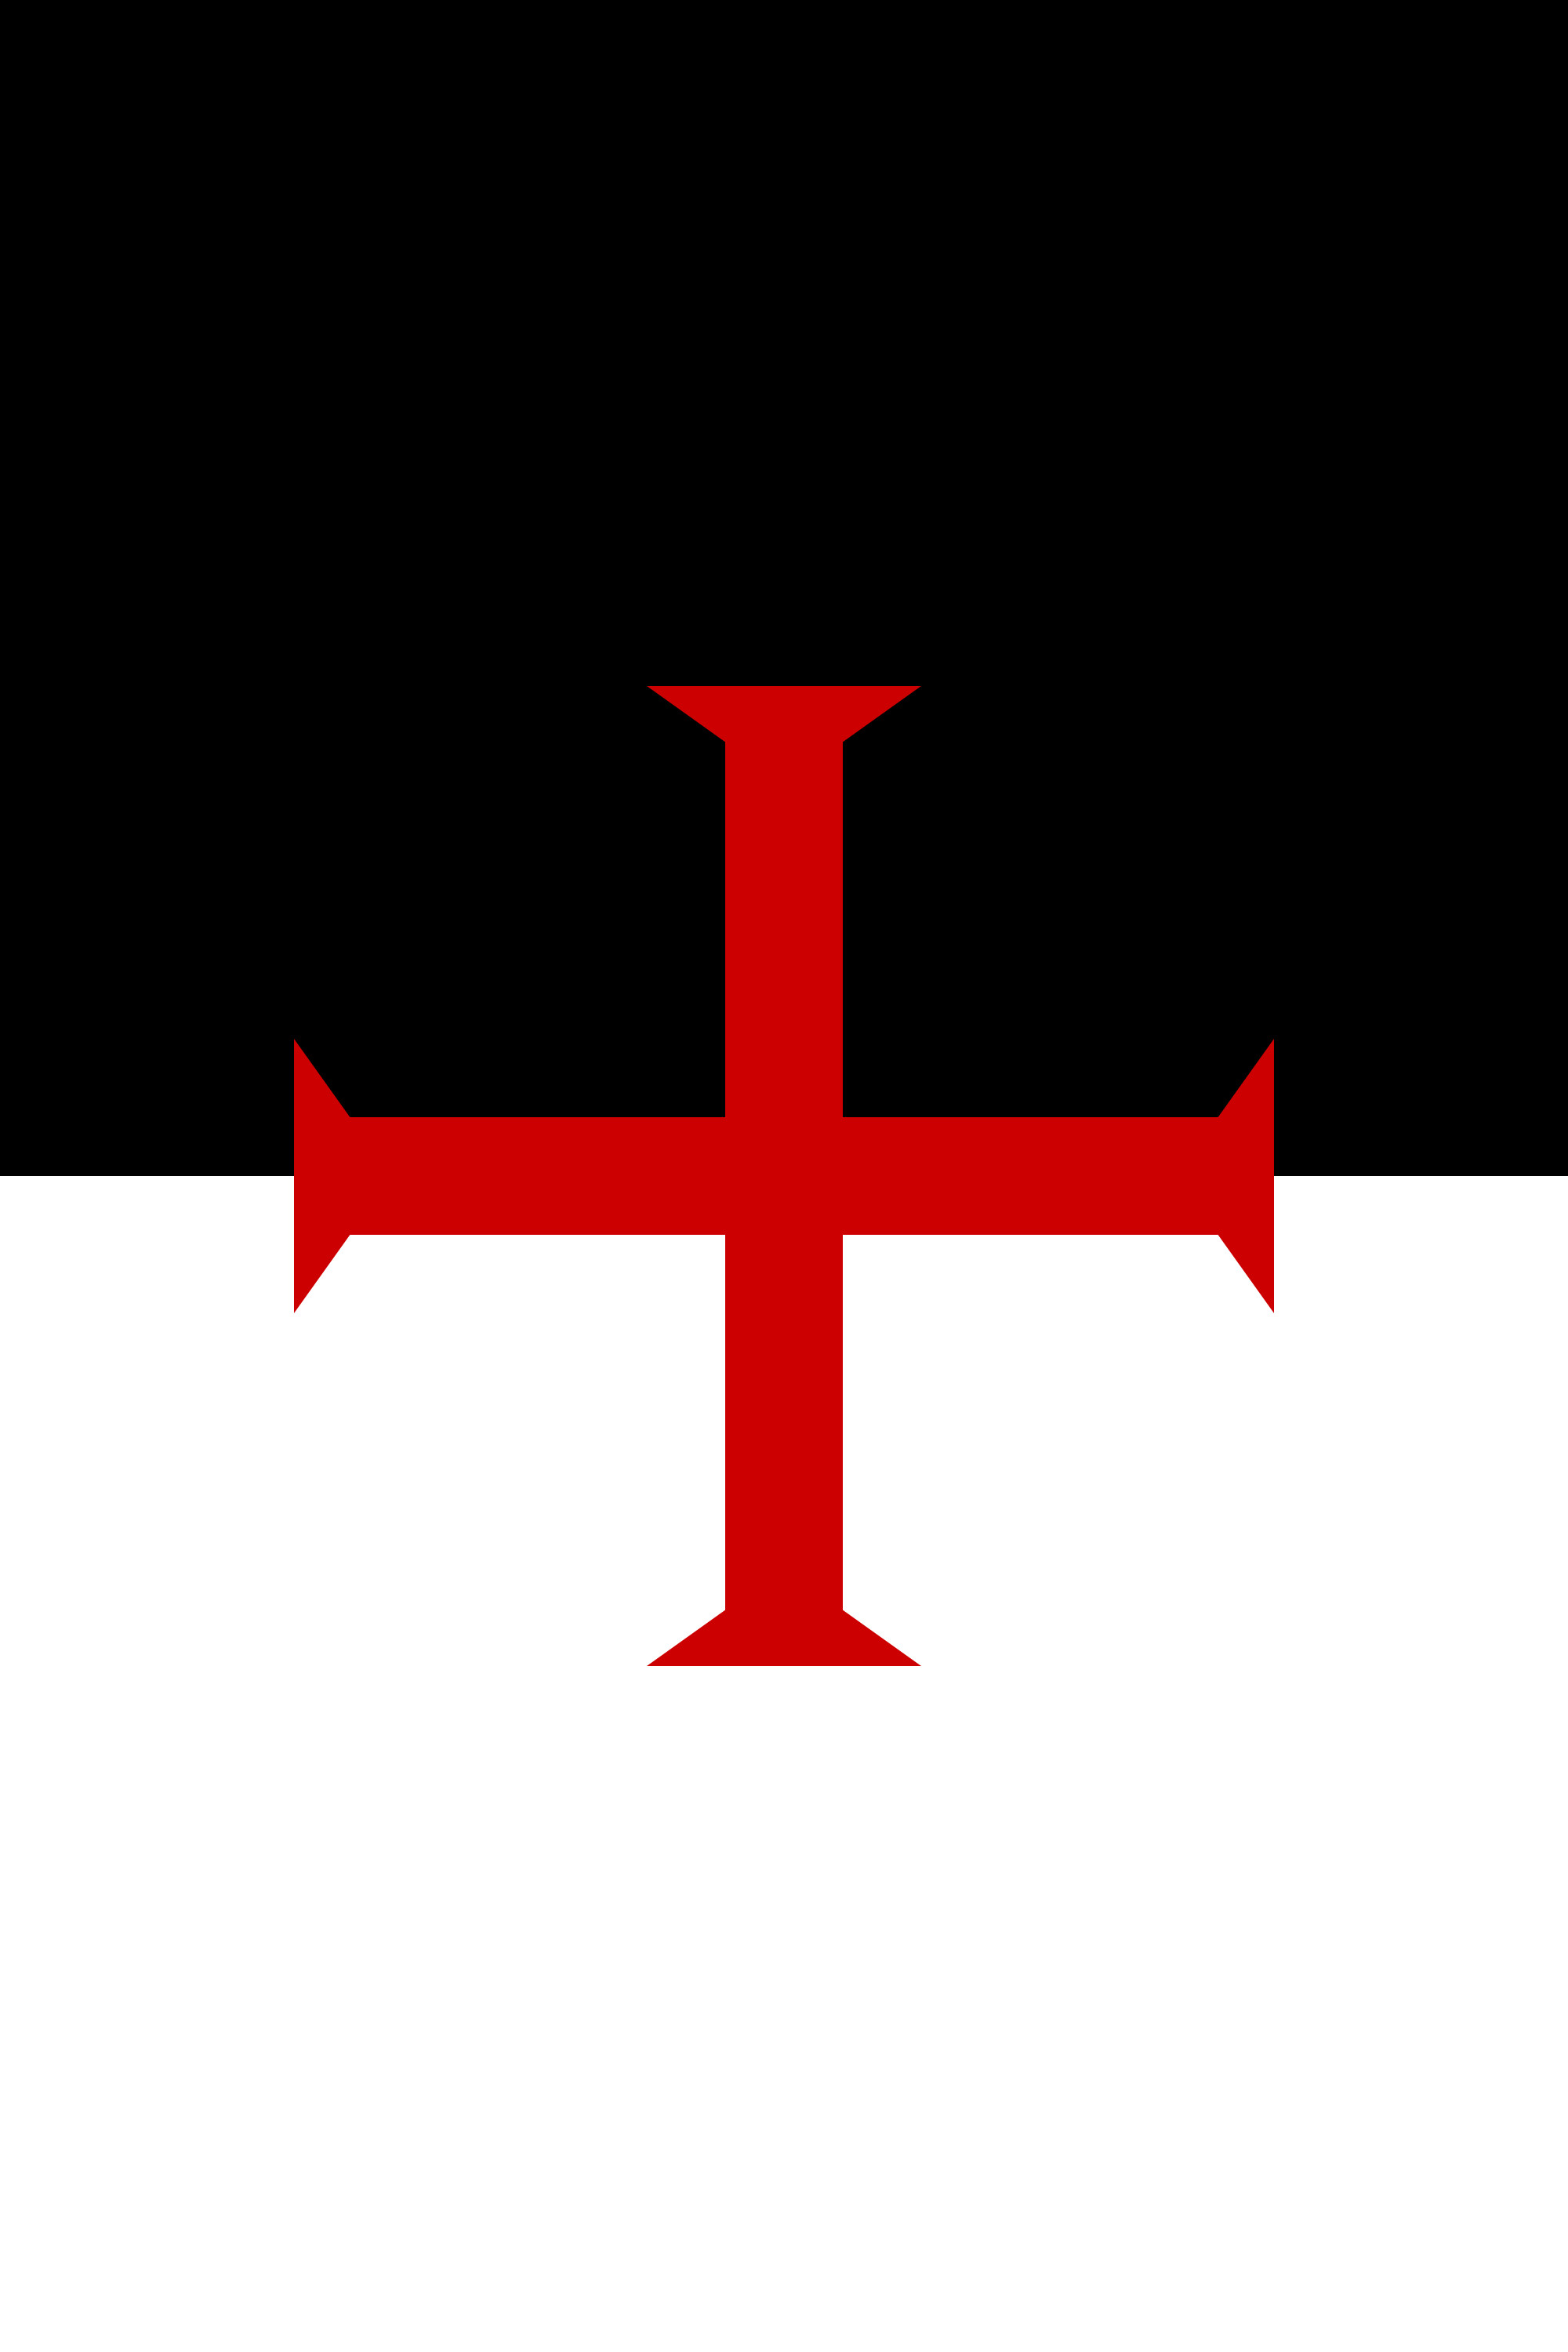 Knights Templar – Wikipedia, the free encyclopedia